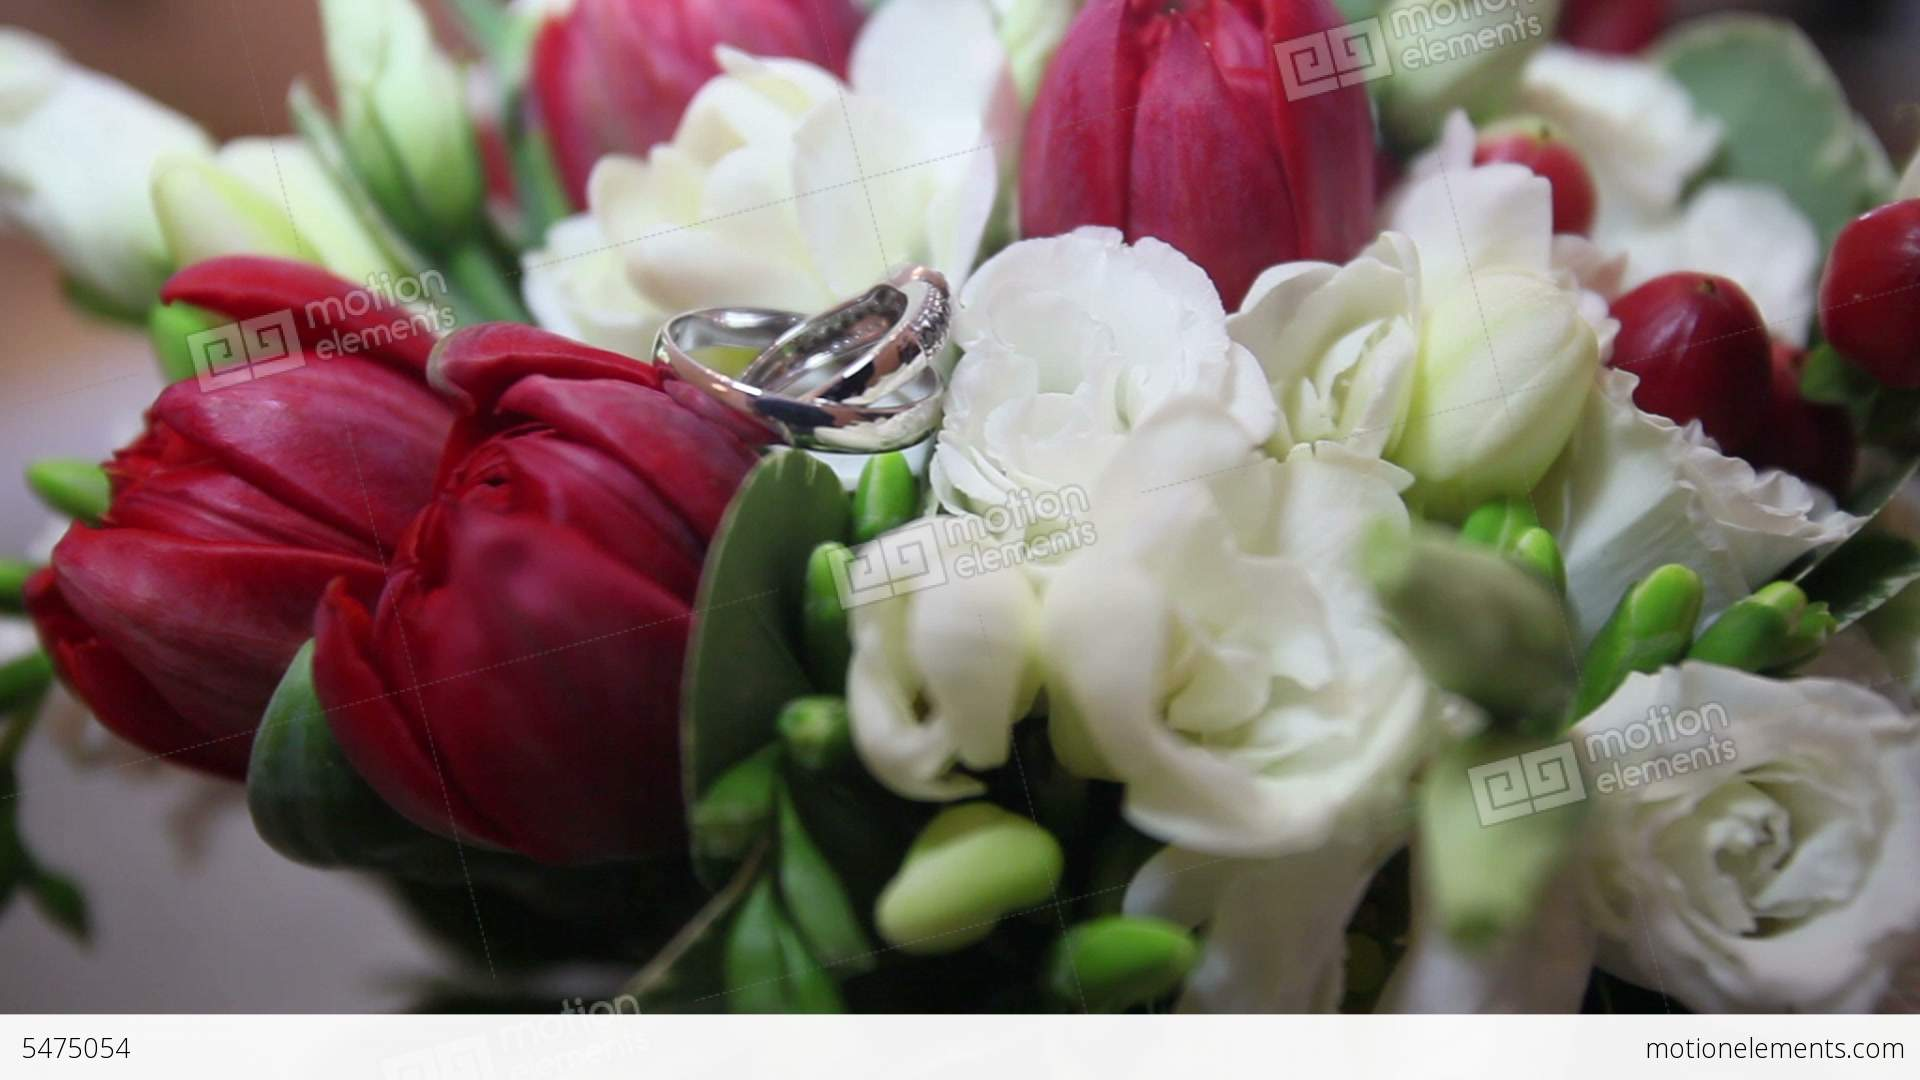 wedding online rings pair bands white or a close at celebration in up of image inside flowers stock bouquet